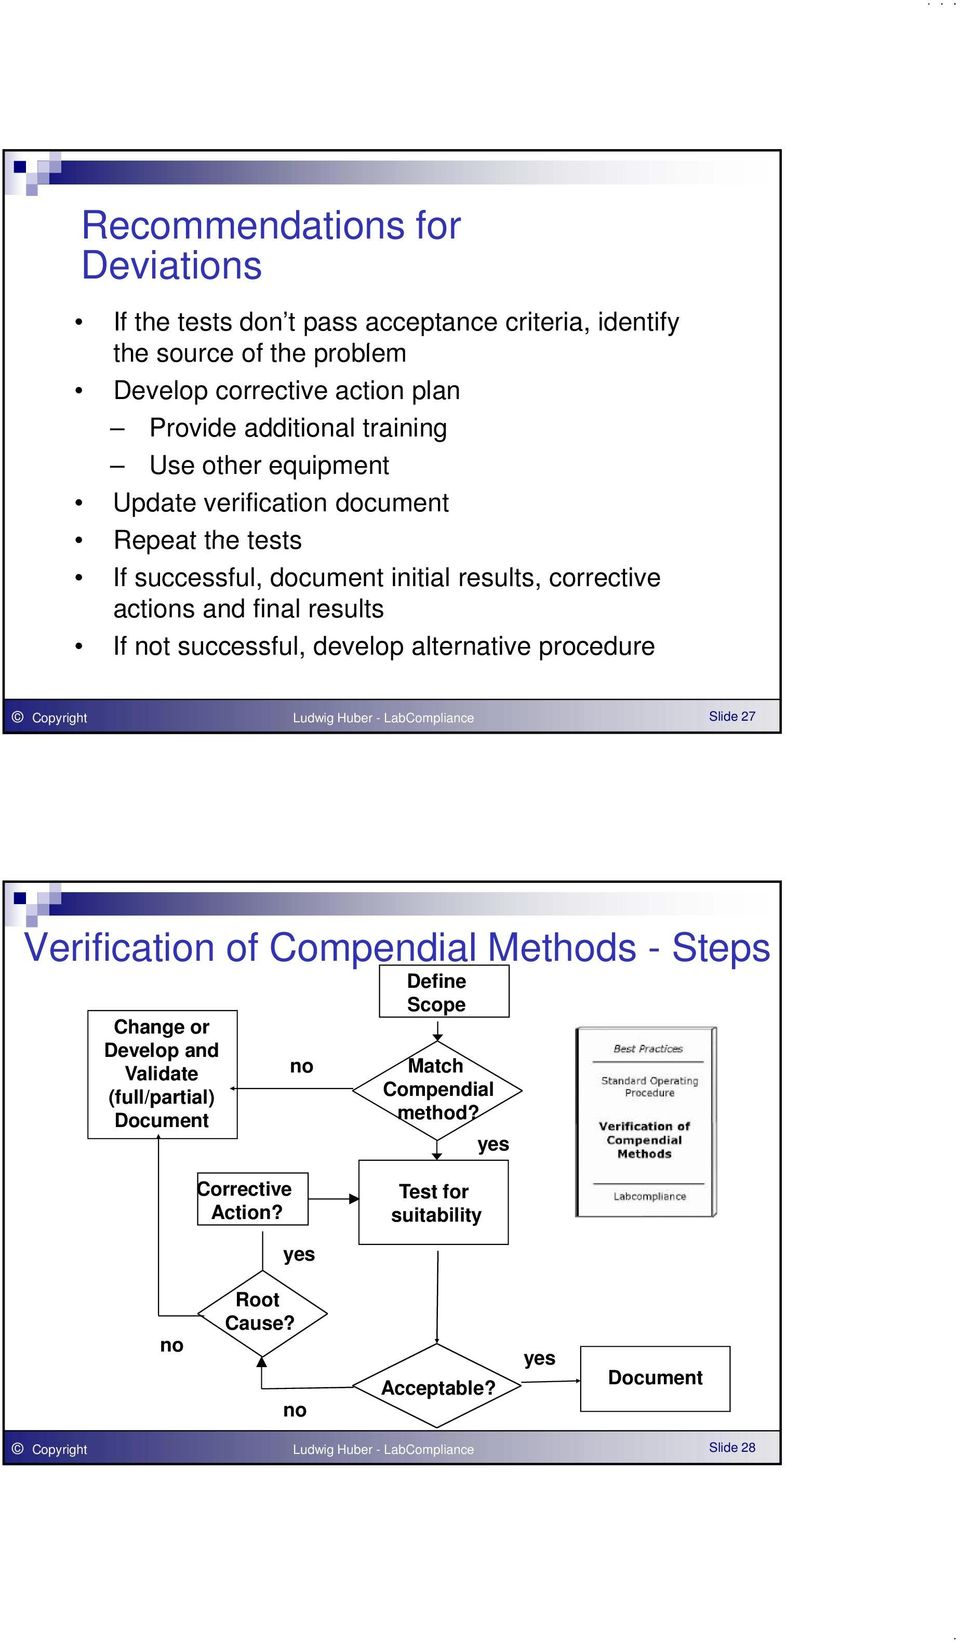 alternative procedure Copyright Ludwig Huber - LabCompliance Slide 27 Verification of Compendial Methods - Steps Change or Develop and Validate (full/partial) Document no